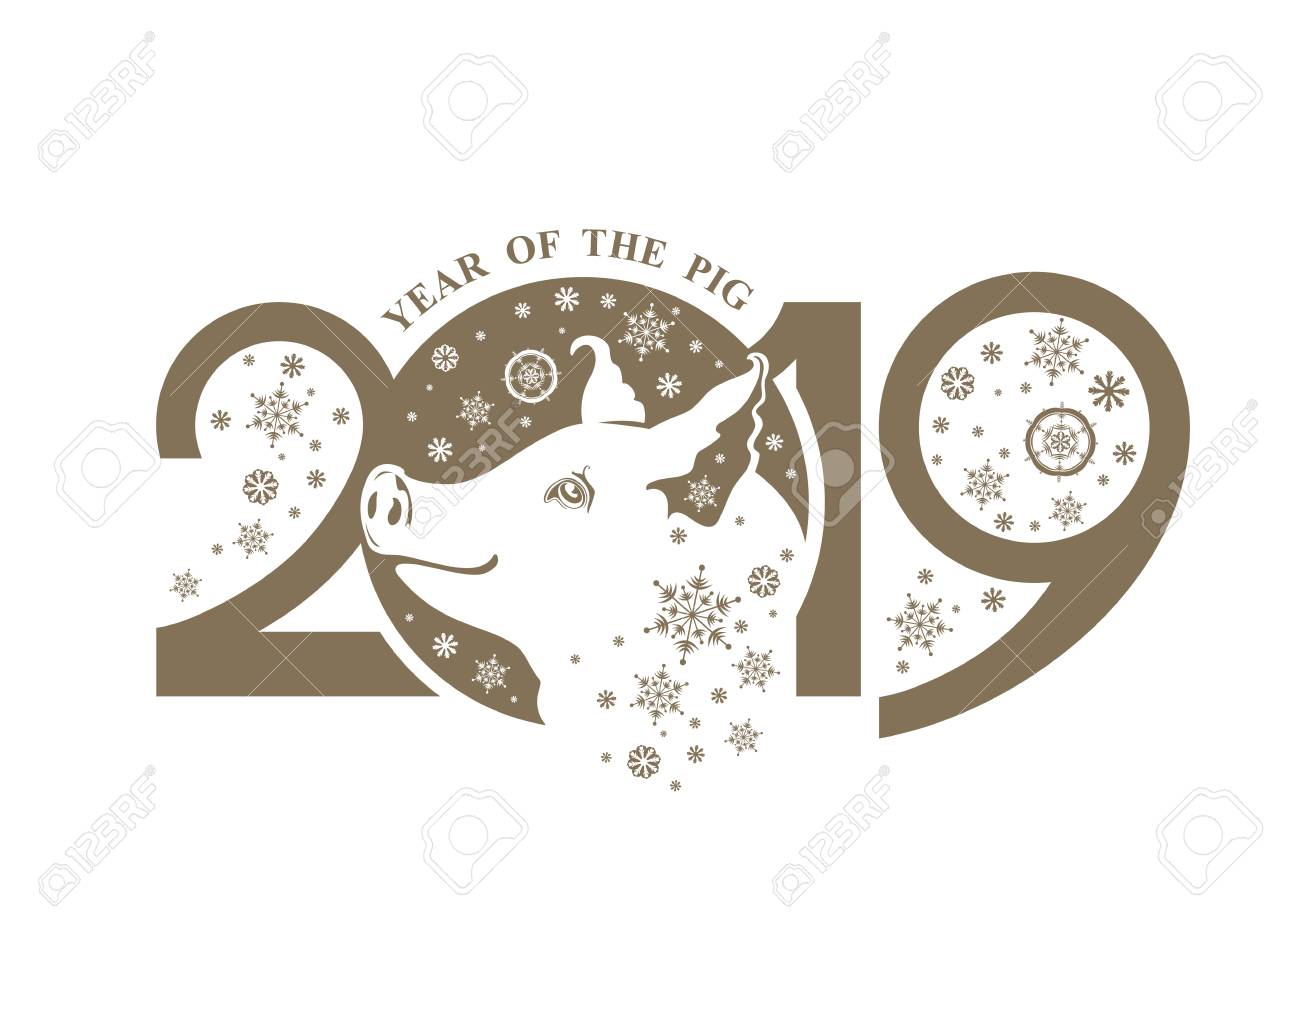 year of the pig 2019 cute piglet and snowflakes flat illustration